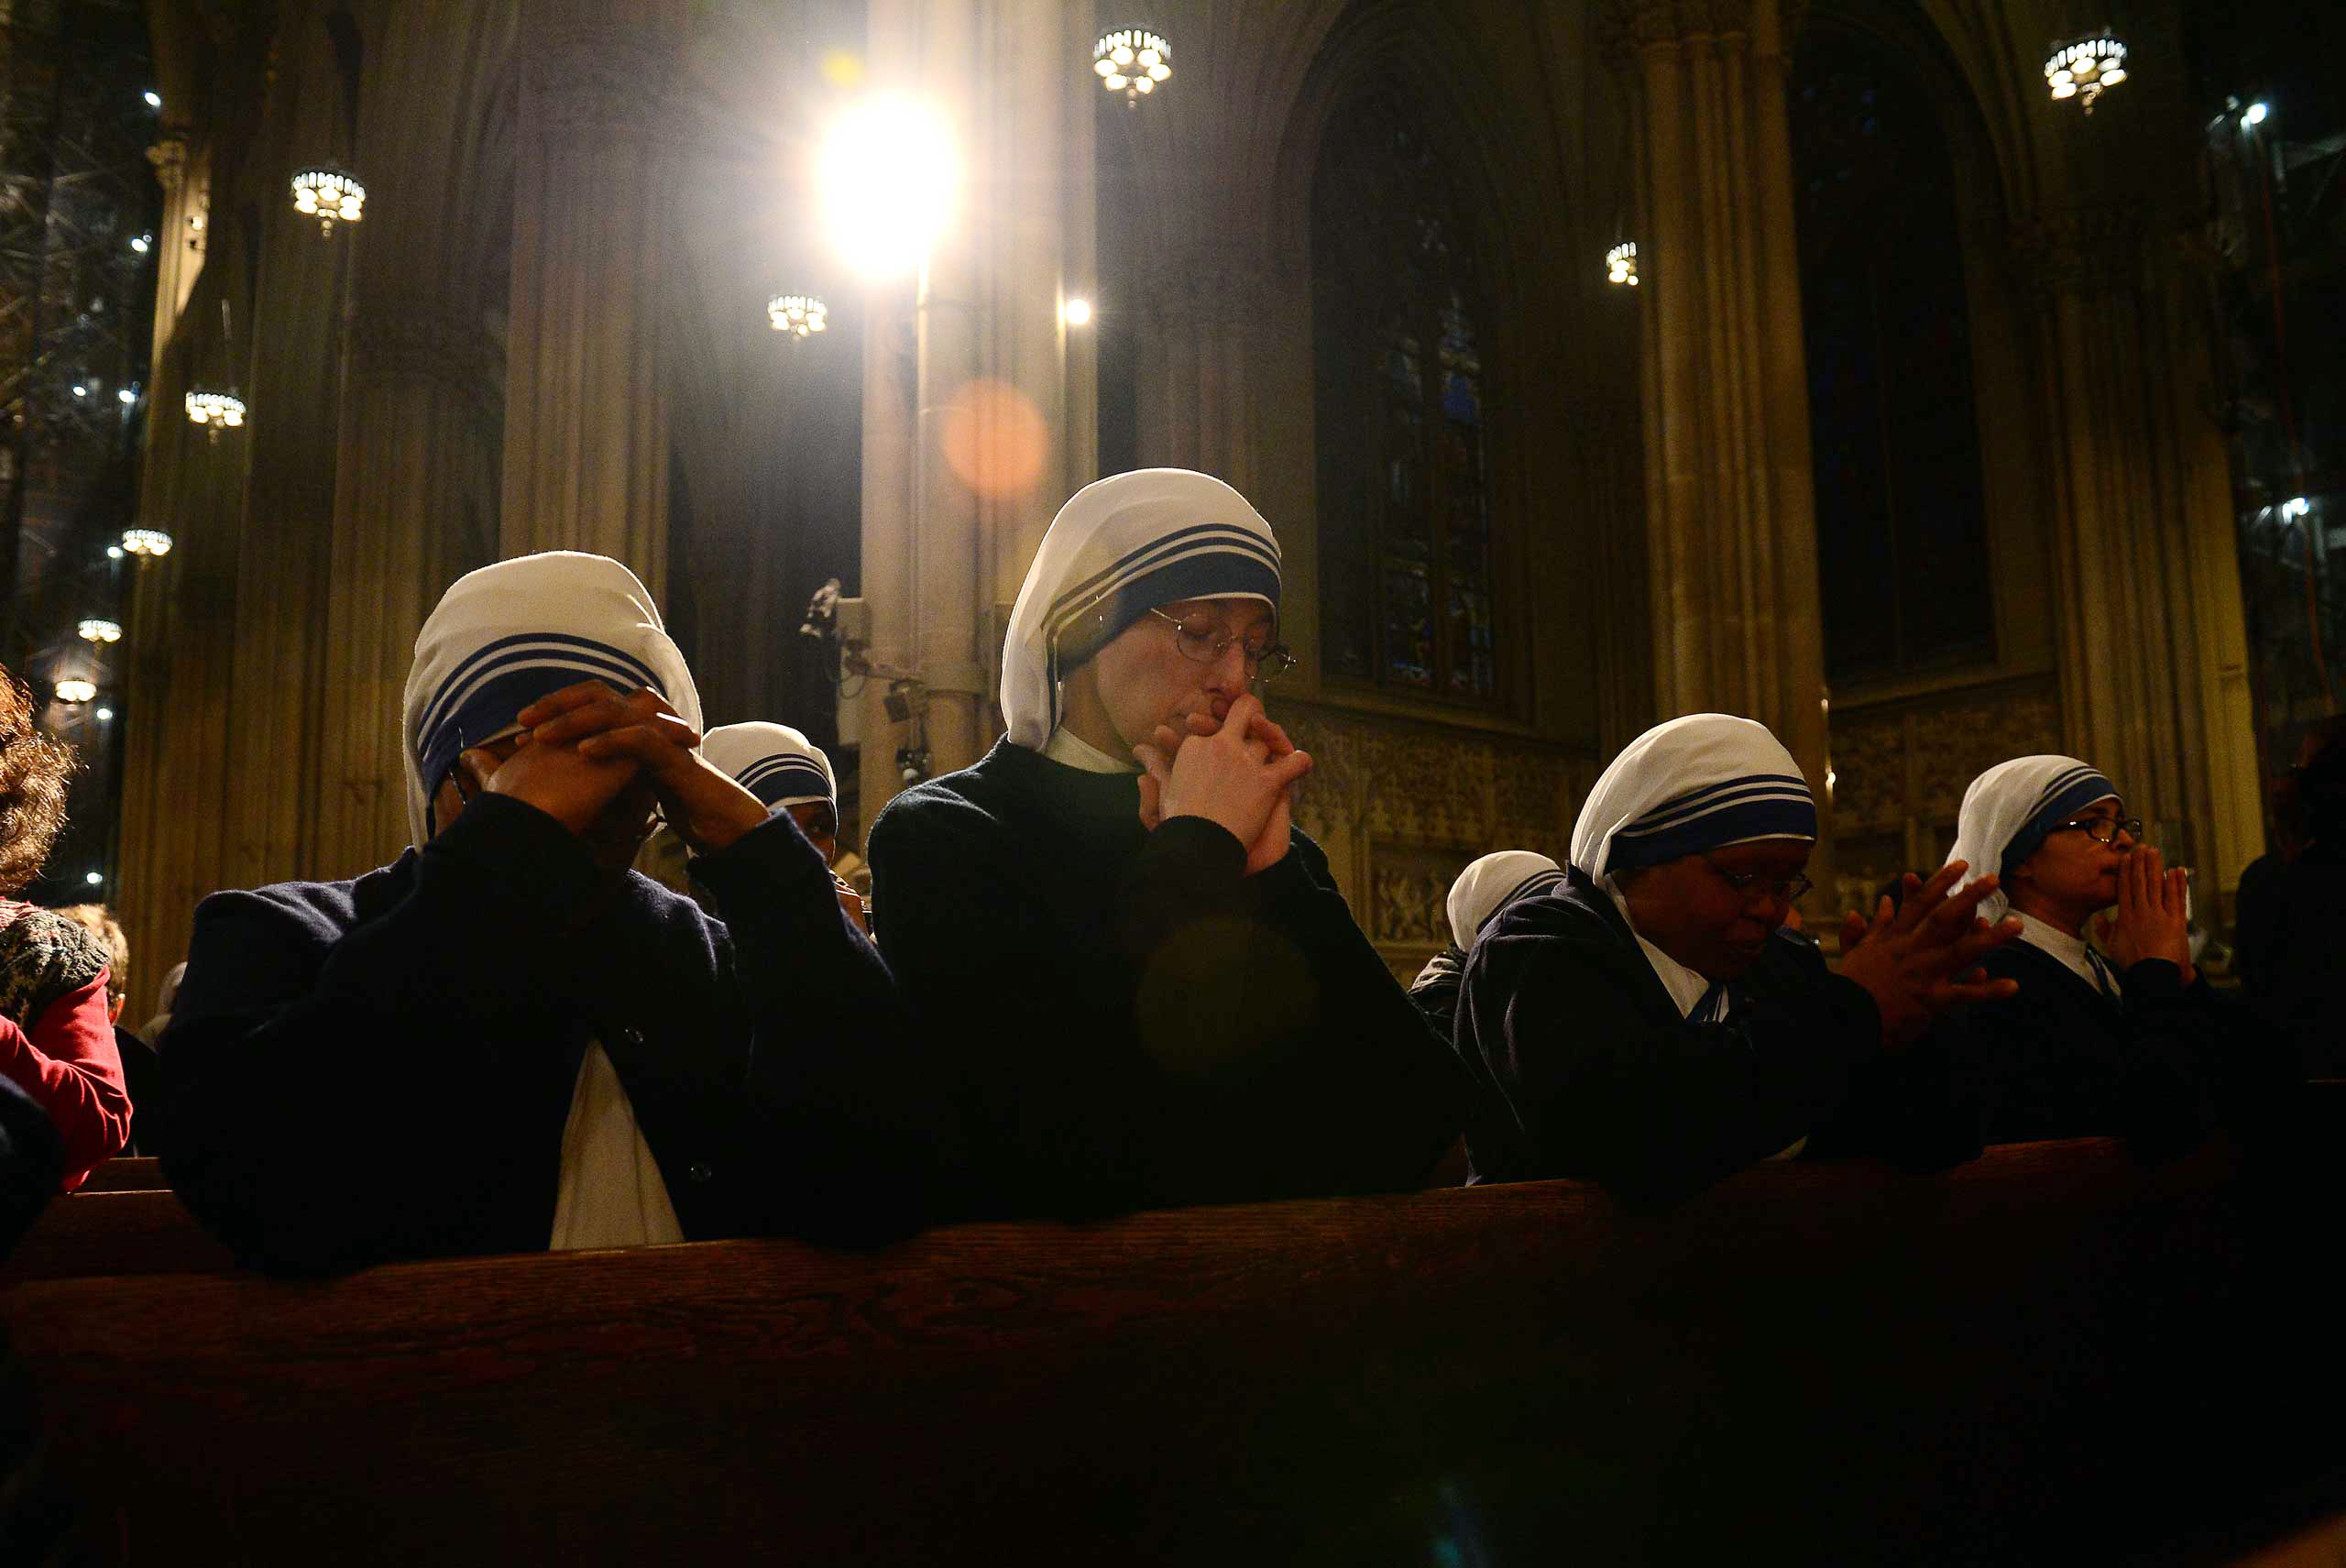 Nuns pray during a mass in celebration of Pope Benedict XVI at St. Patrick's Cathedral in New York, Feb. 28, 2013.